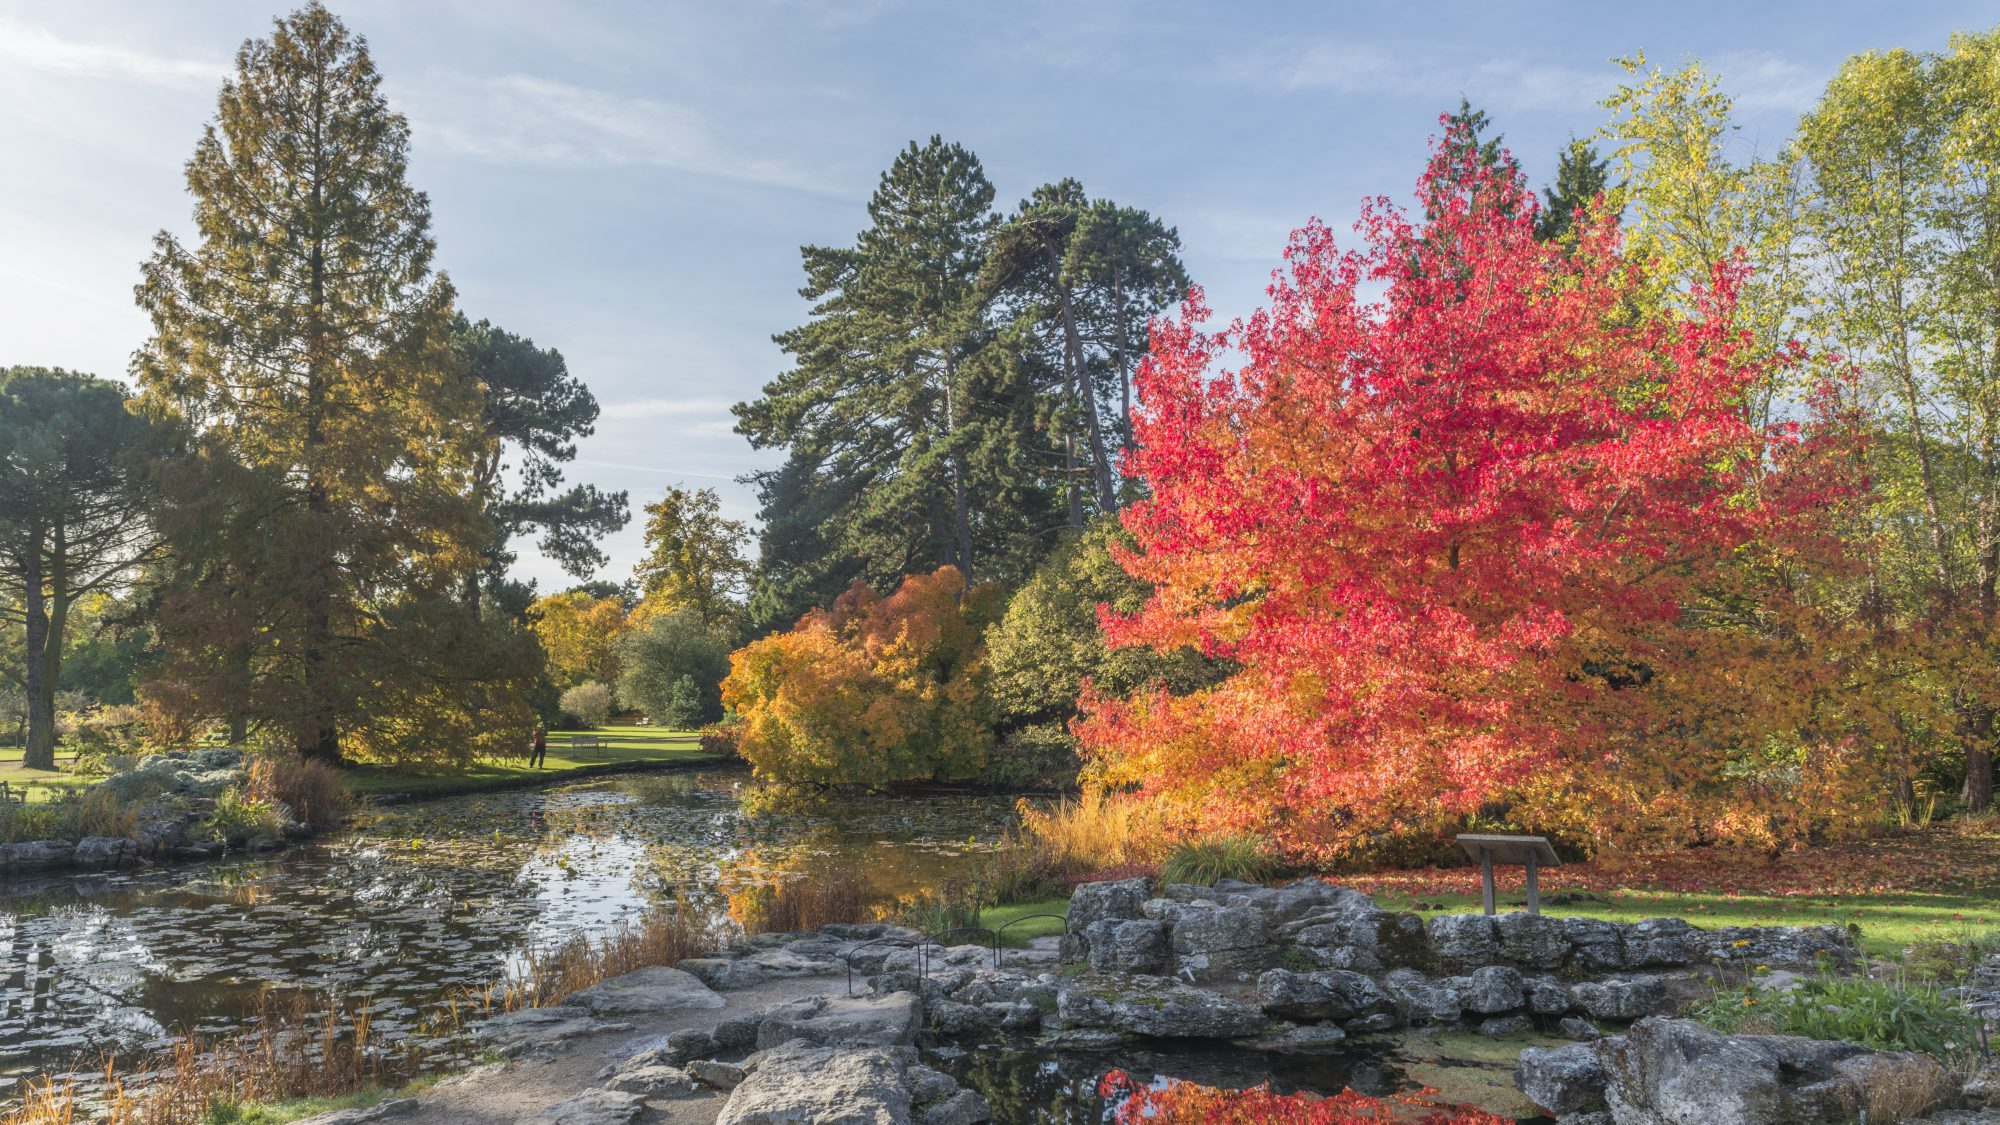 Autumn colours in the Rock garden.